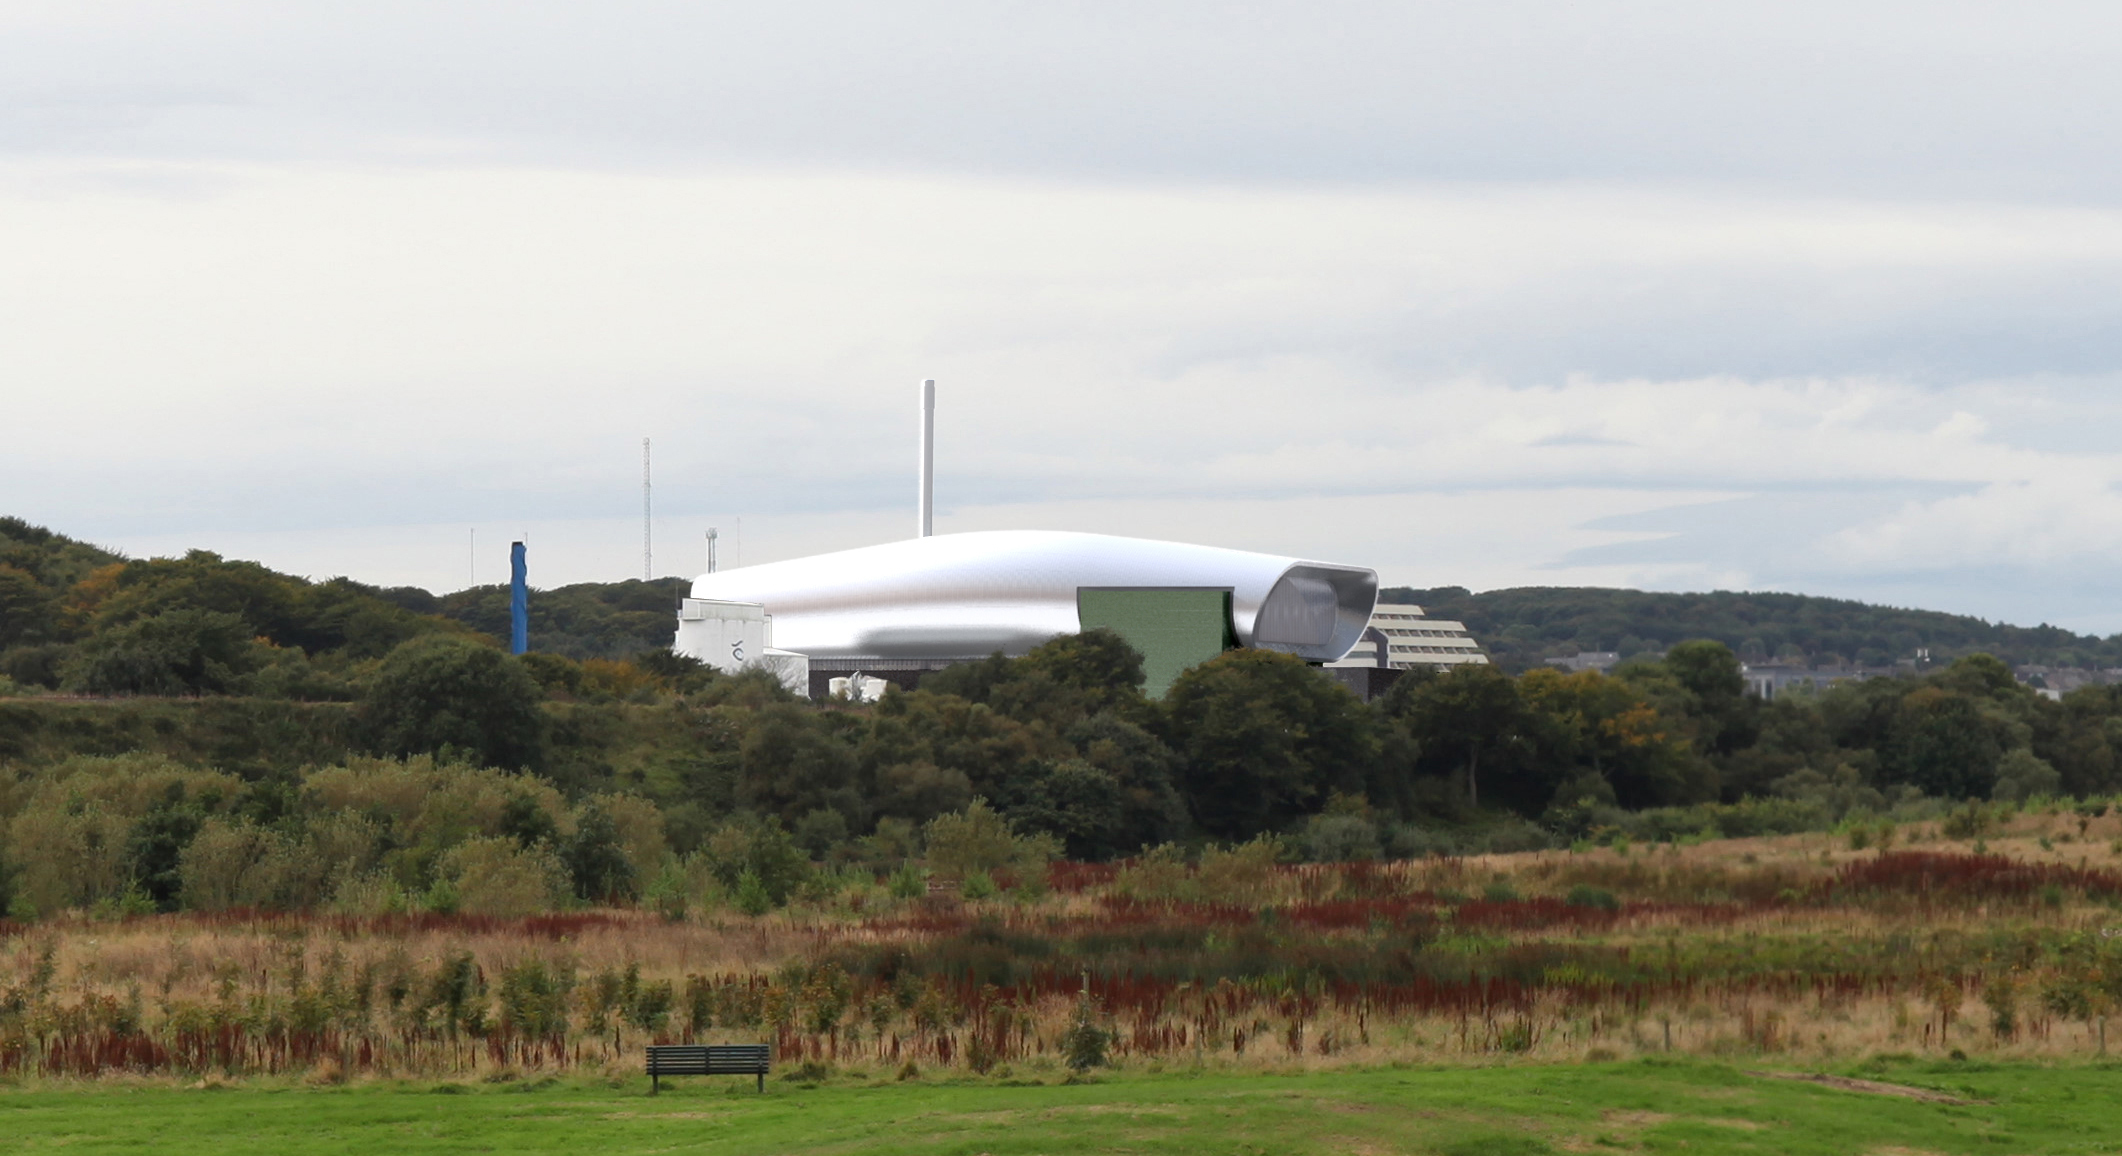 An artist's impression of how the waste energy plant could look in Tullos.